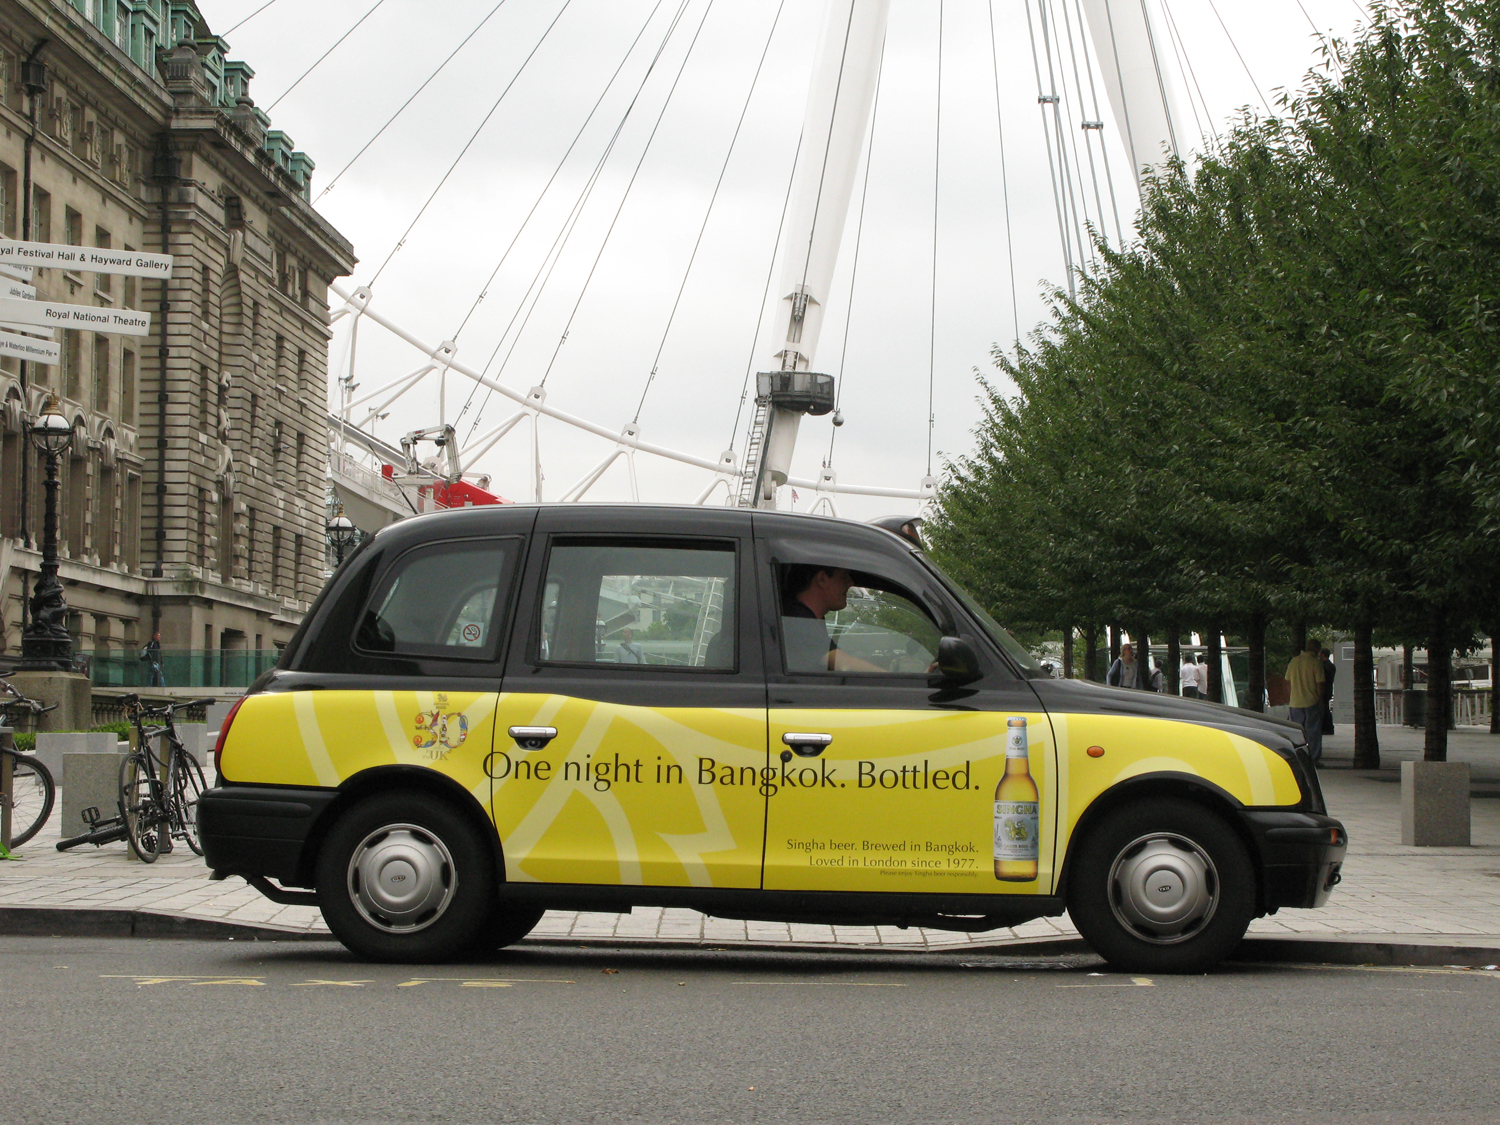 2007 Ubiquitous taxi advertising campaign for Singha Beer - 30 years of getting to know you